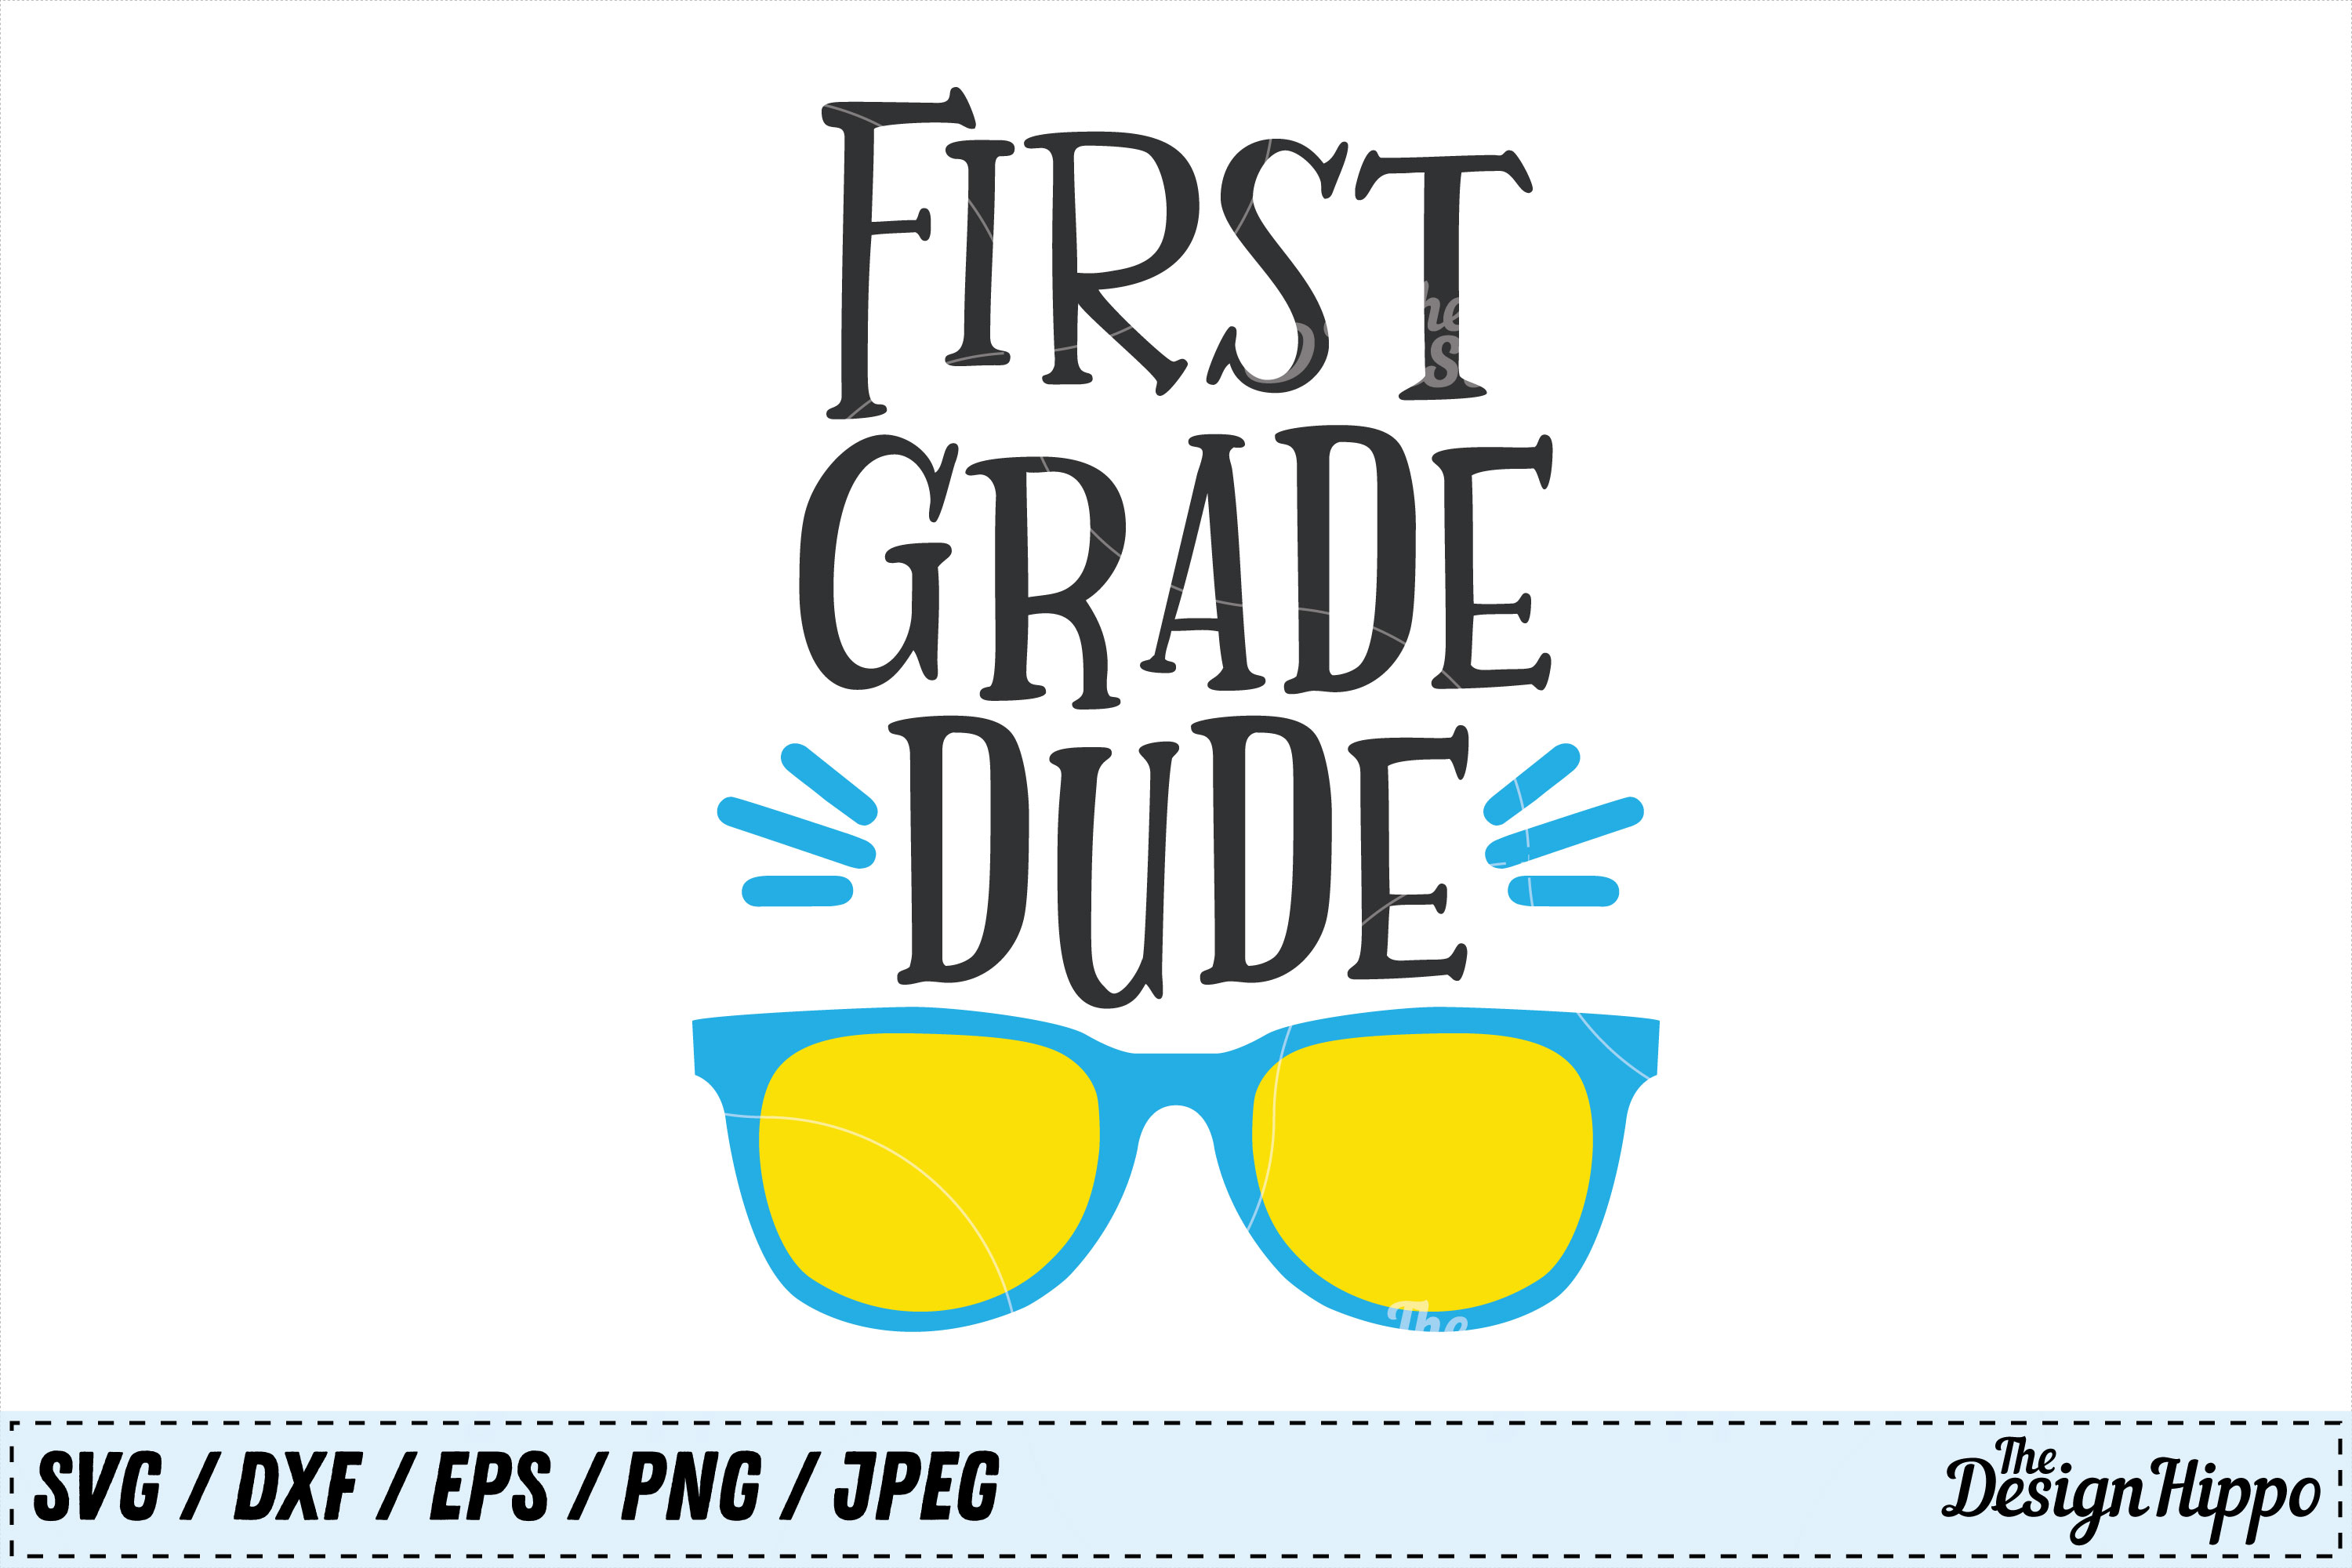 Download Free First Grade Dude Svg Graphic By Thedesignhippo Creative Fabrica for Cricut Explore, Silhouette and other cutting machines.